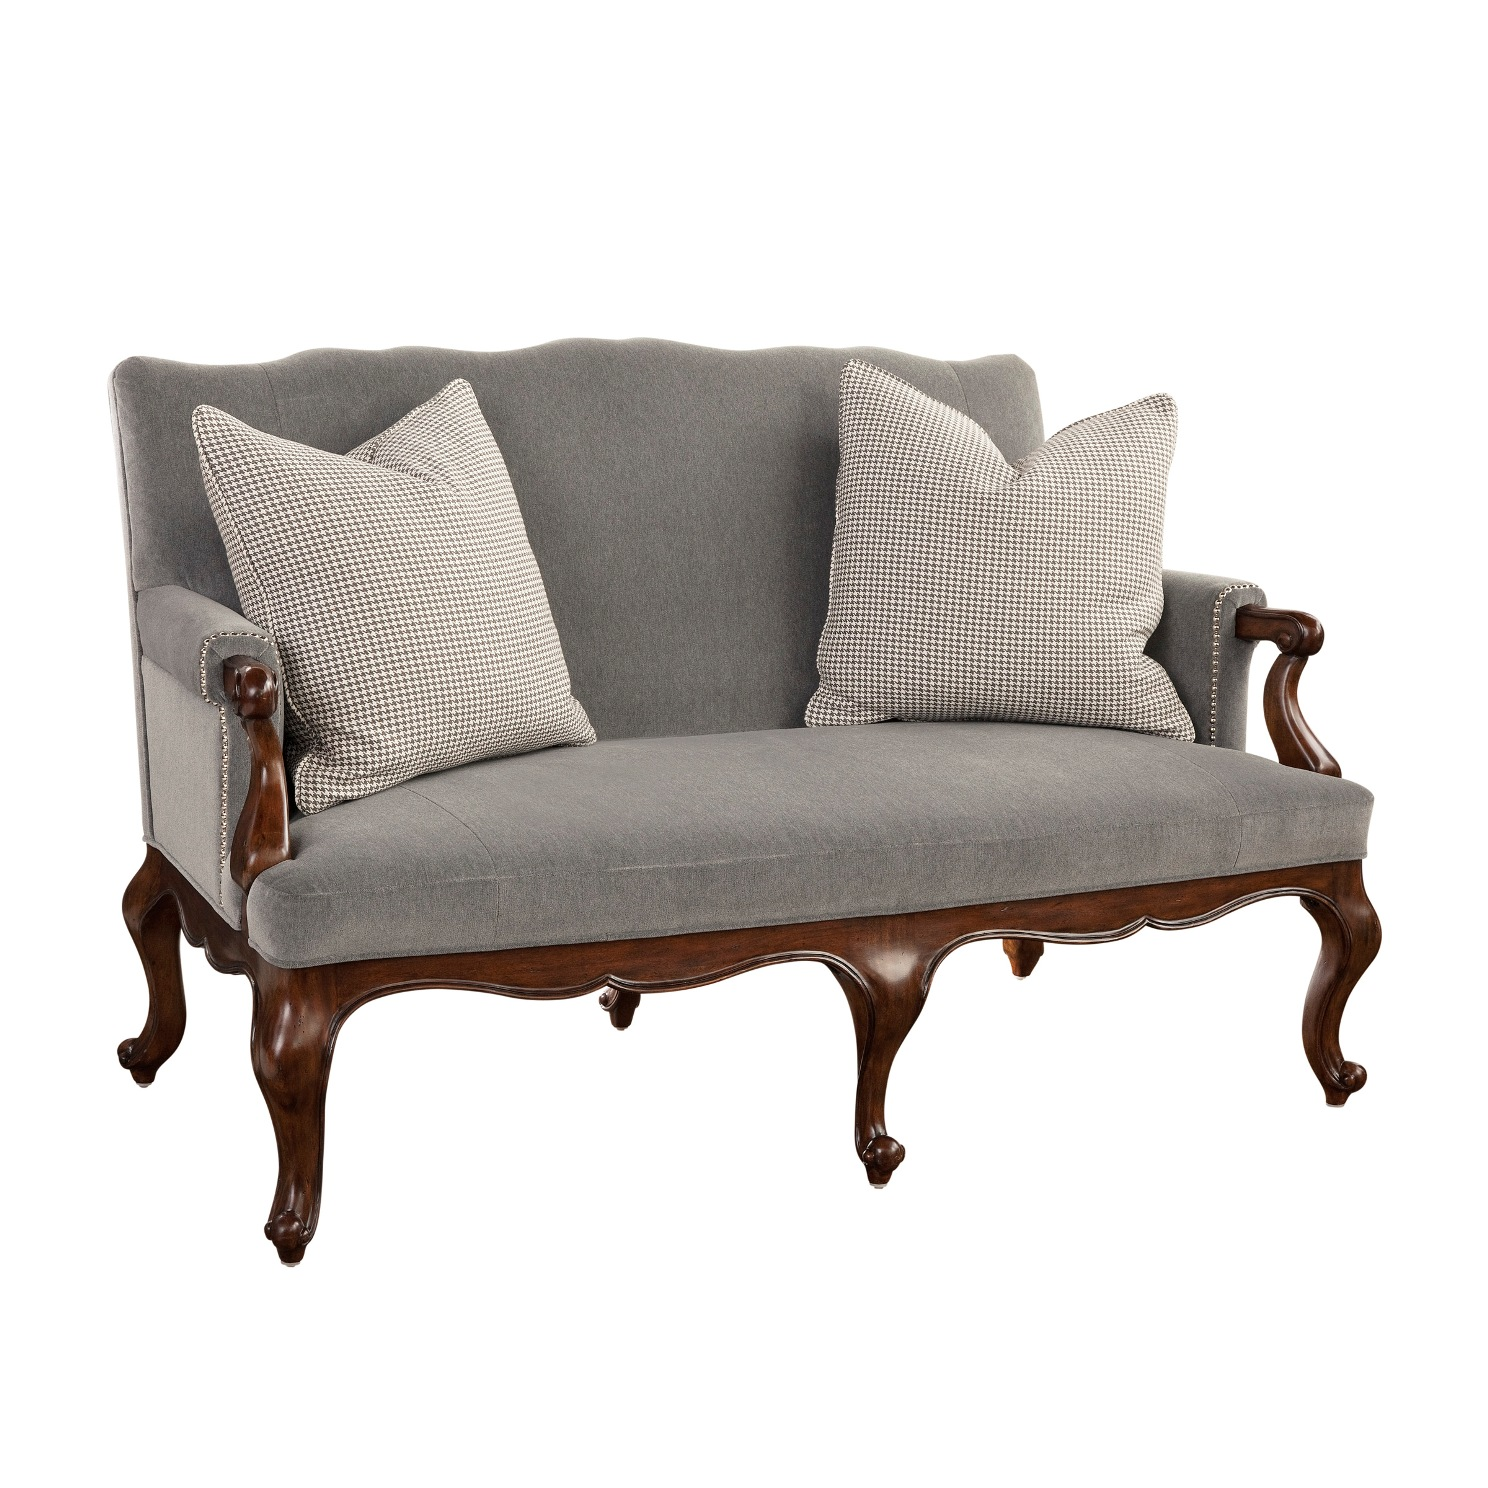 Cabriole Sofa How To Furnish It In Your Living Space 3